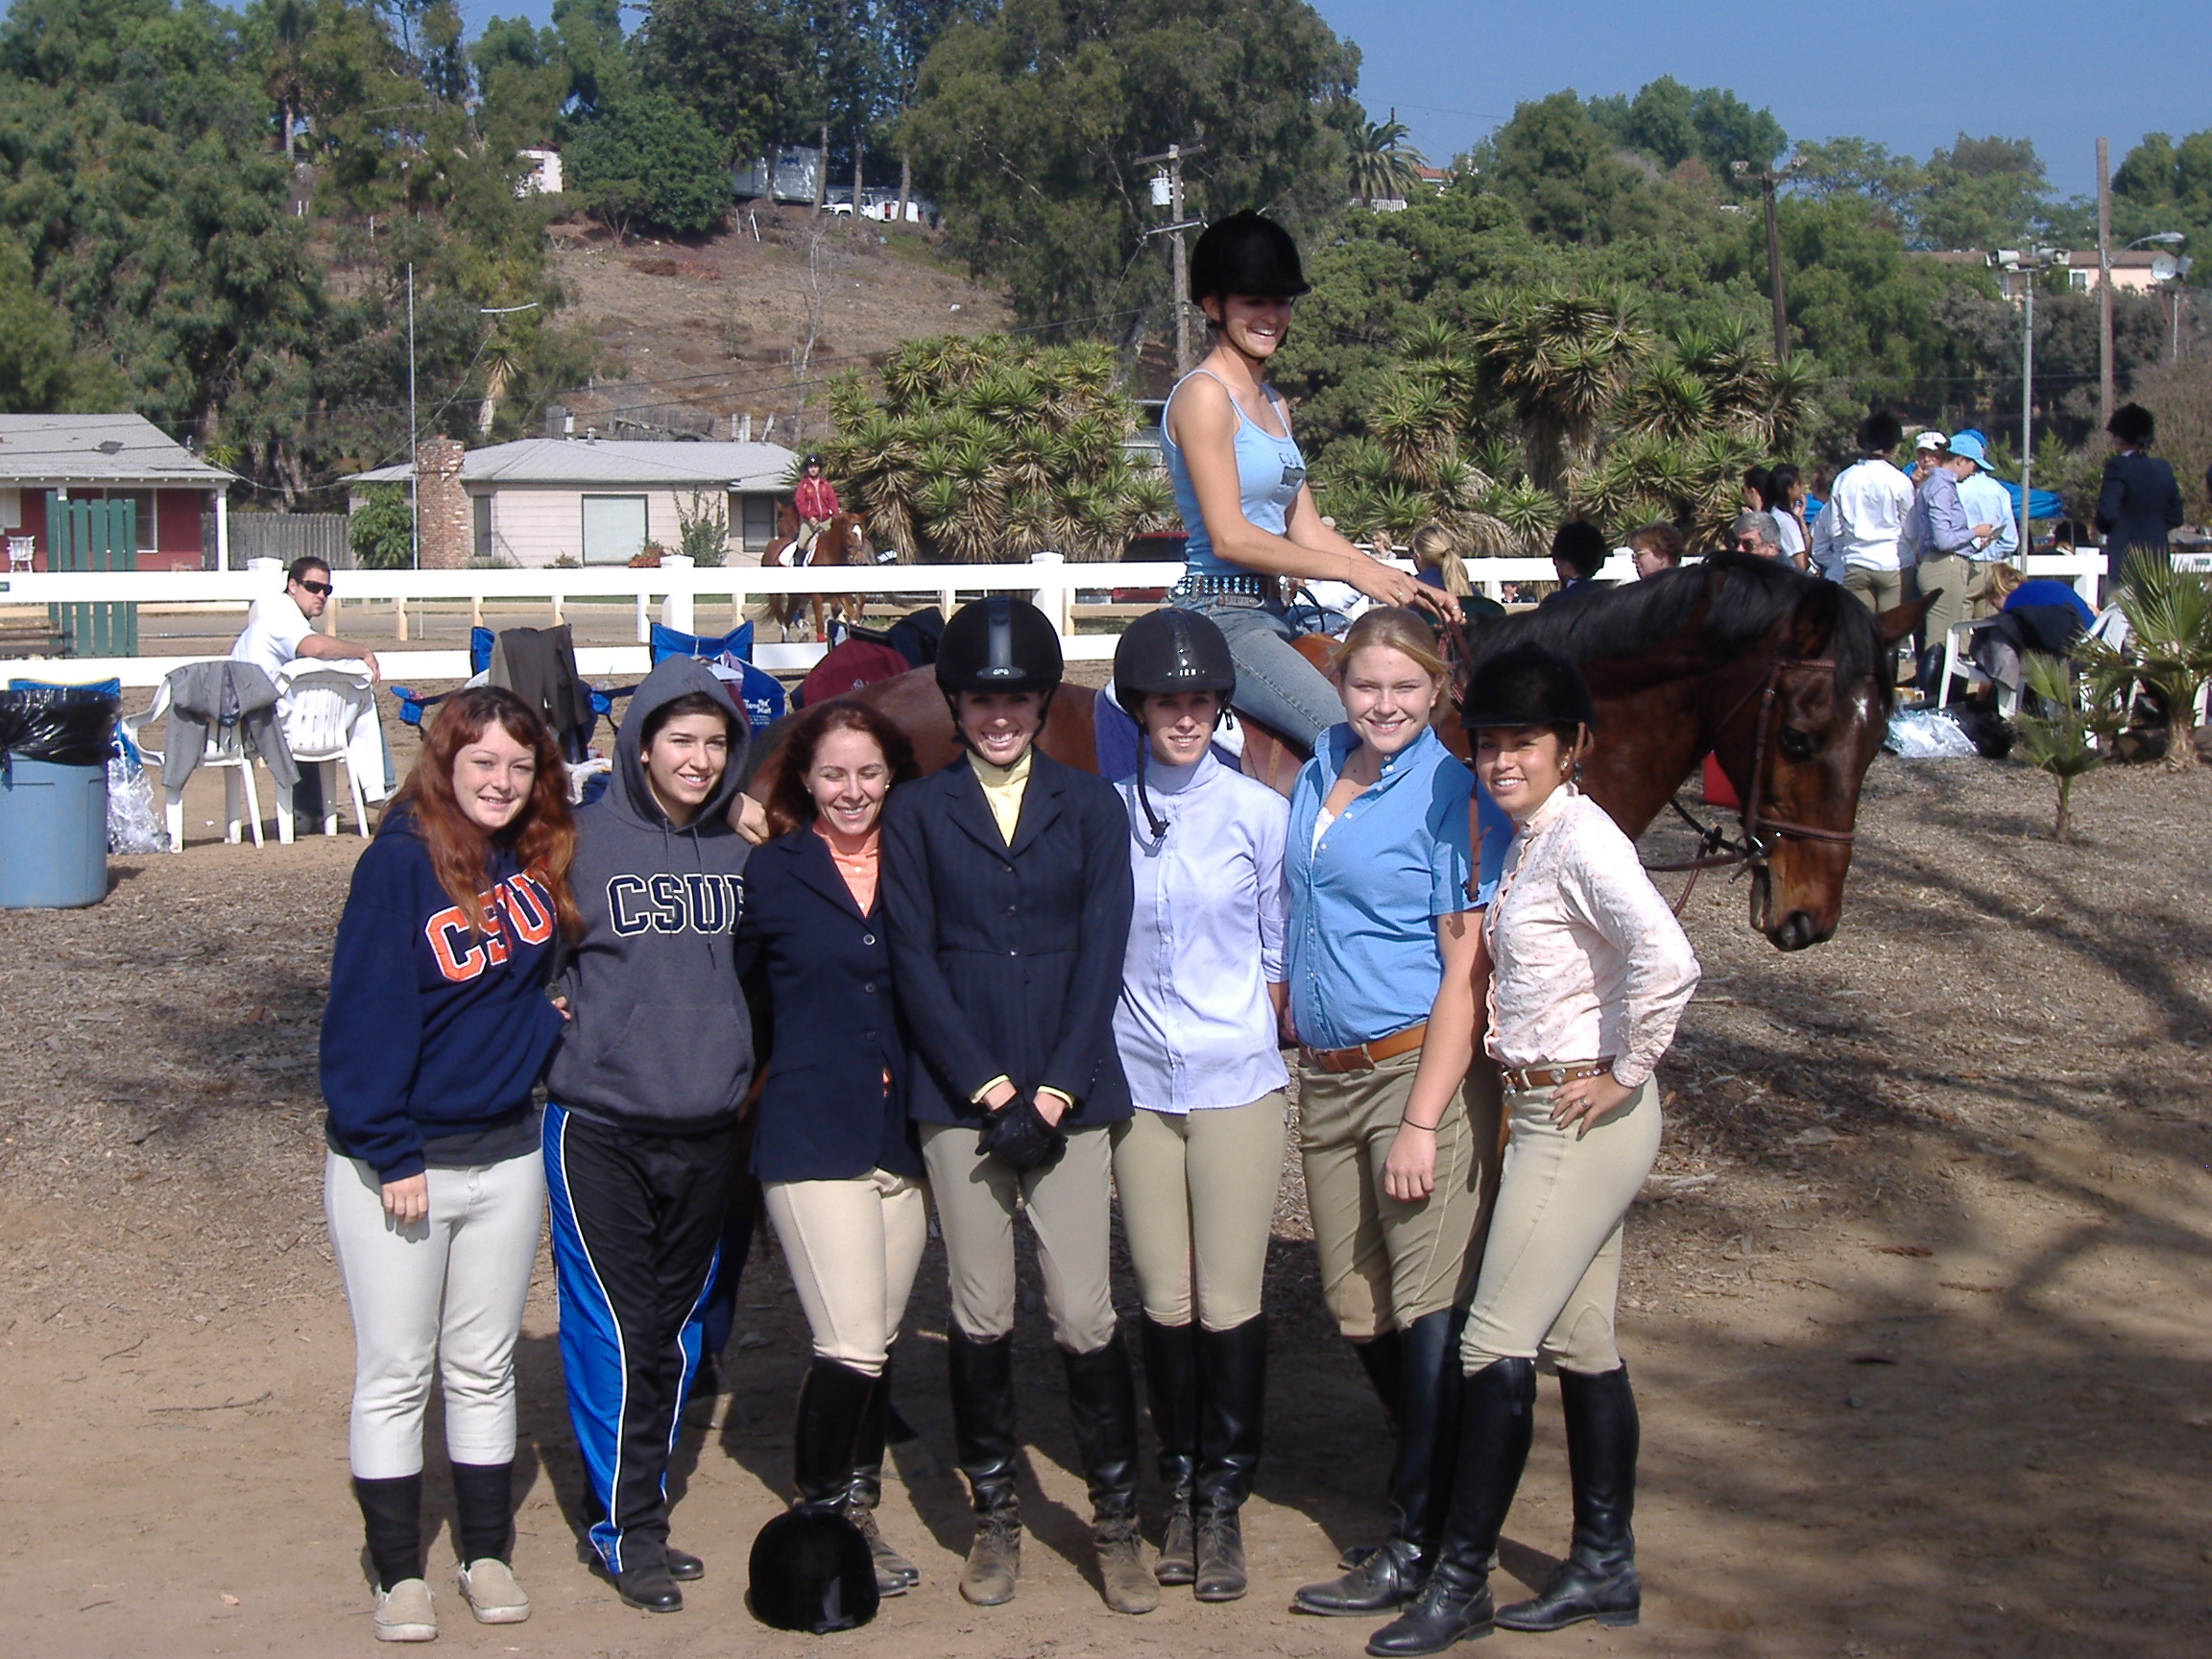 Club Web Site Csuf Equestrian Team Rcampus